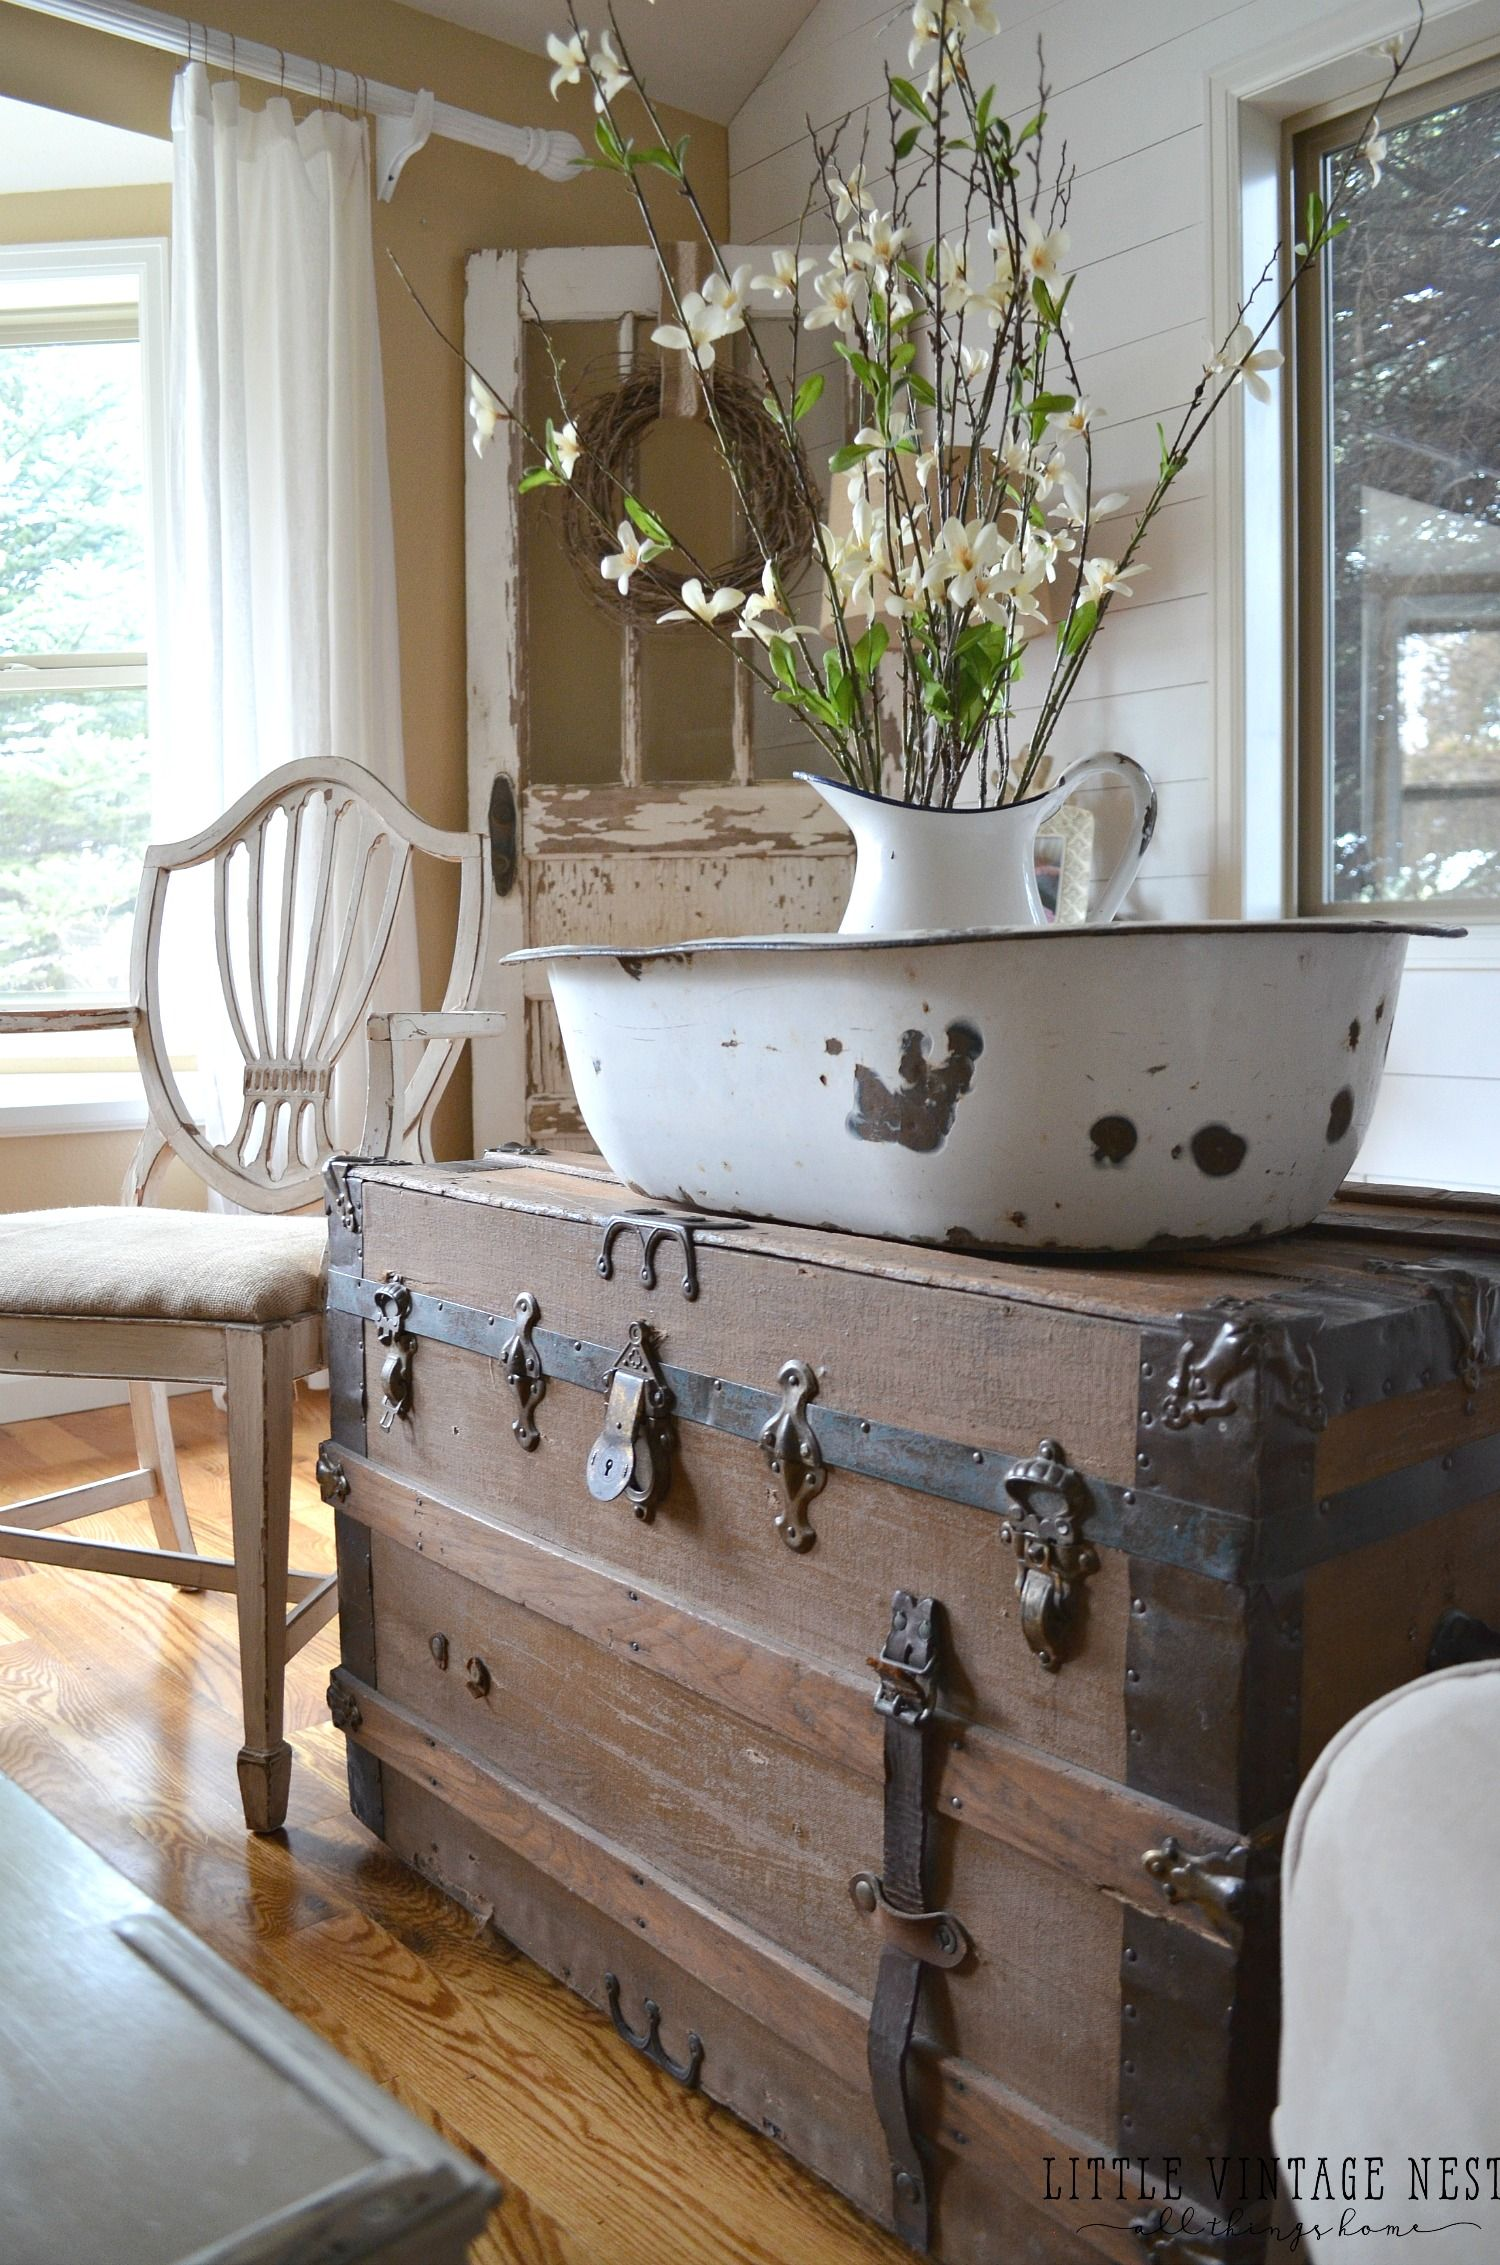 How to Decorate with Vintage Decor  Vintage Trunk. How to Decorate with Vintage Decor   Retro home  Classy and